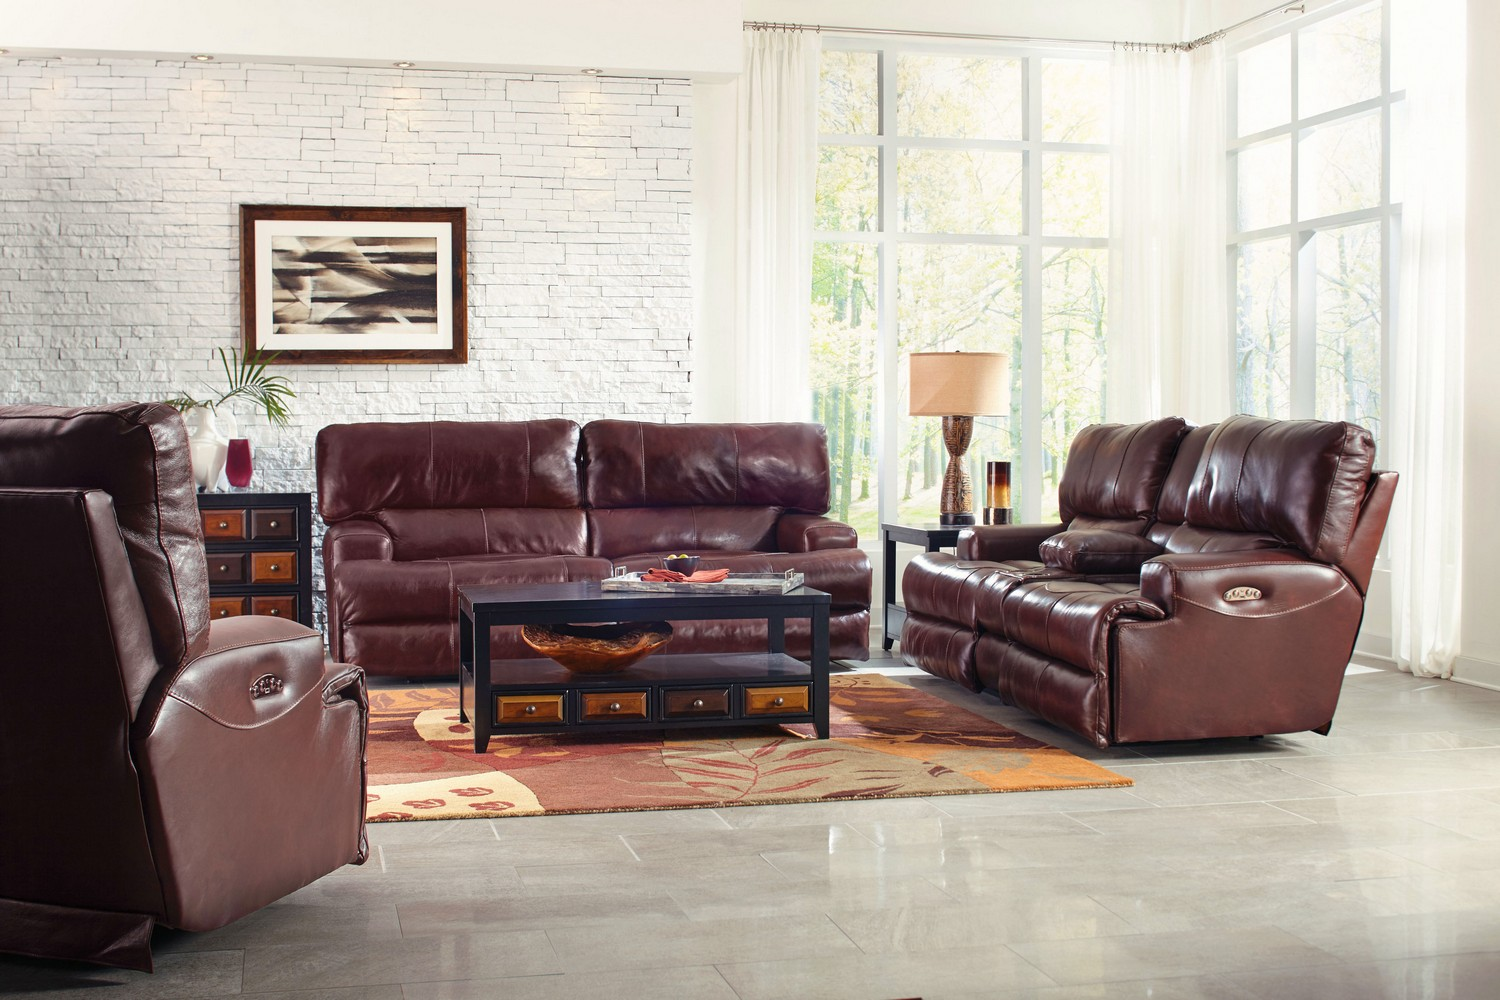 CatNapper Wembley Top Grain Italian Leather Leather Lay Flat Reclining Sofa Set - Walnut